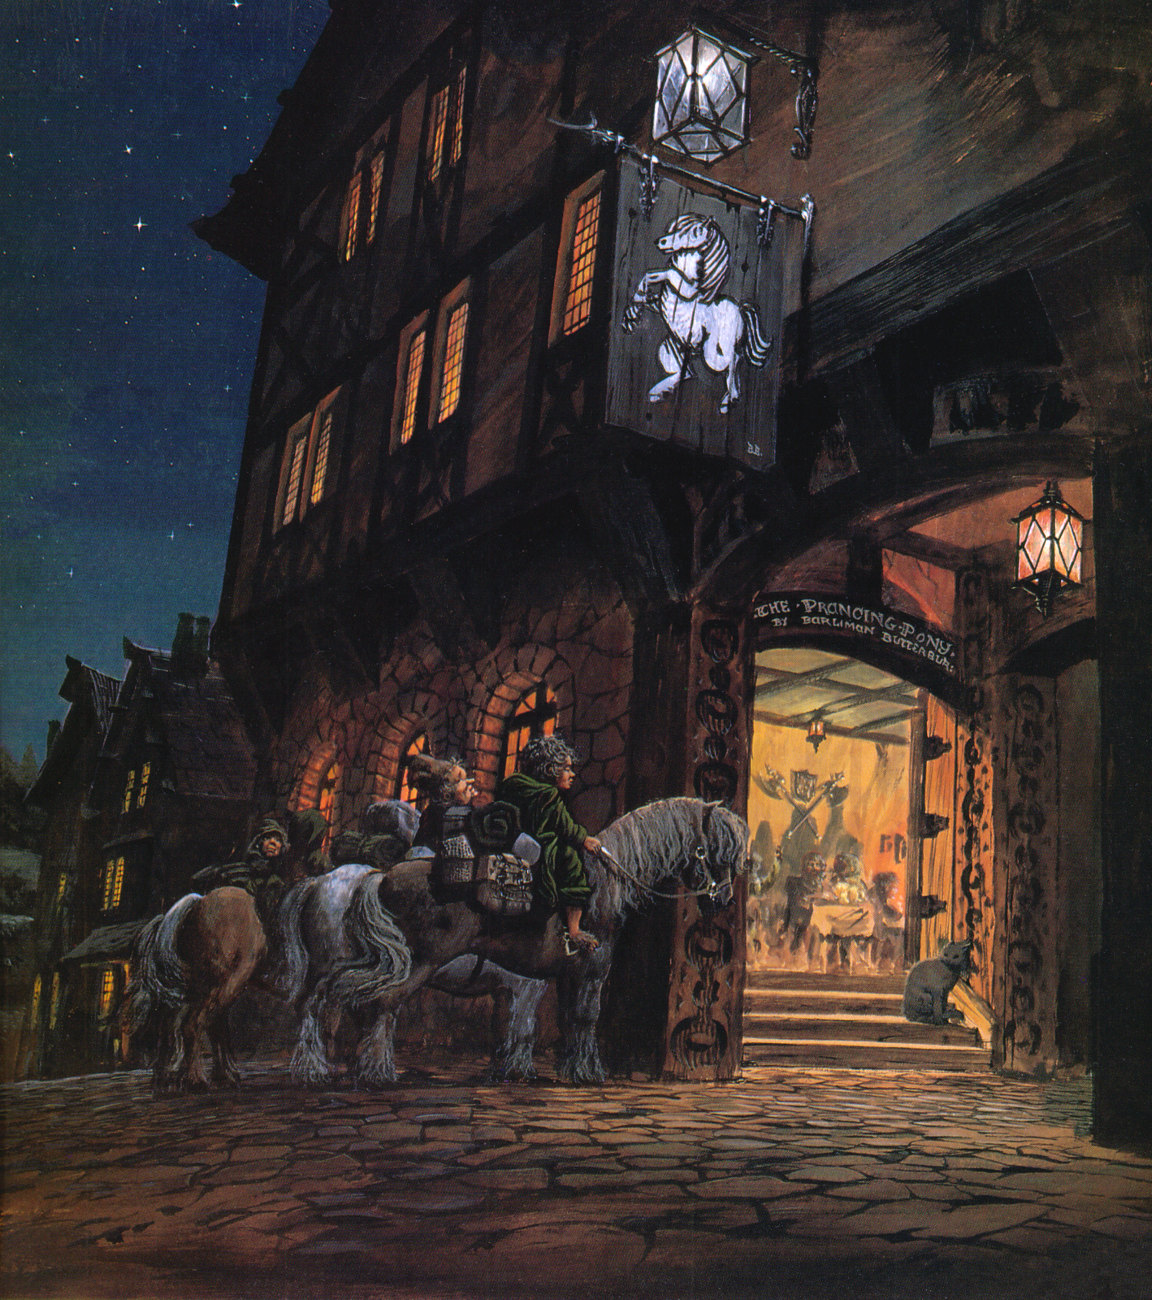 At the Sign of the Prancing Pony | RPG Jeuxvidéo